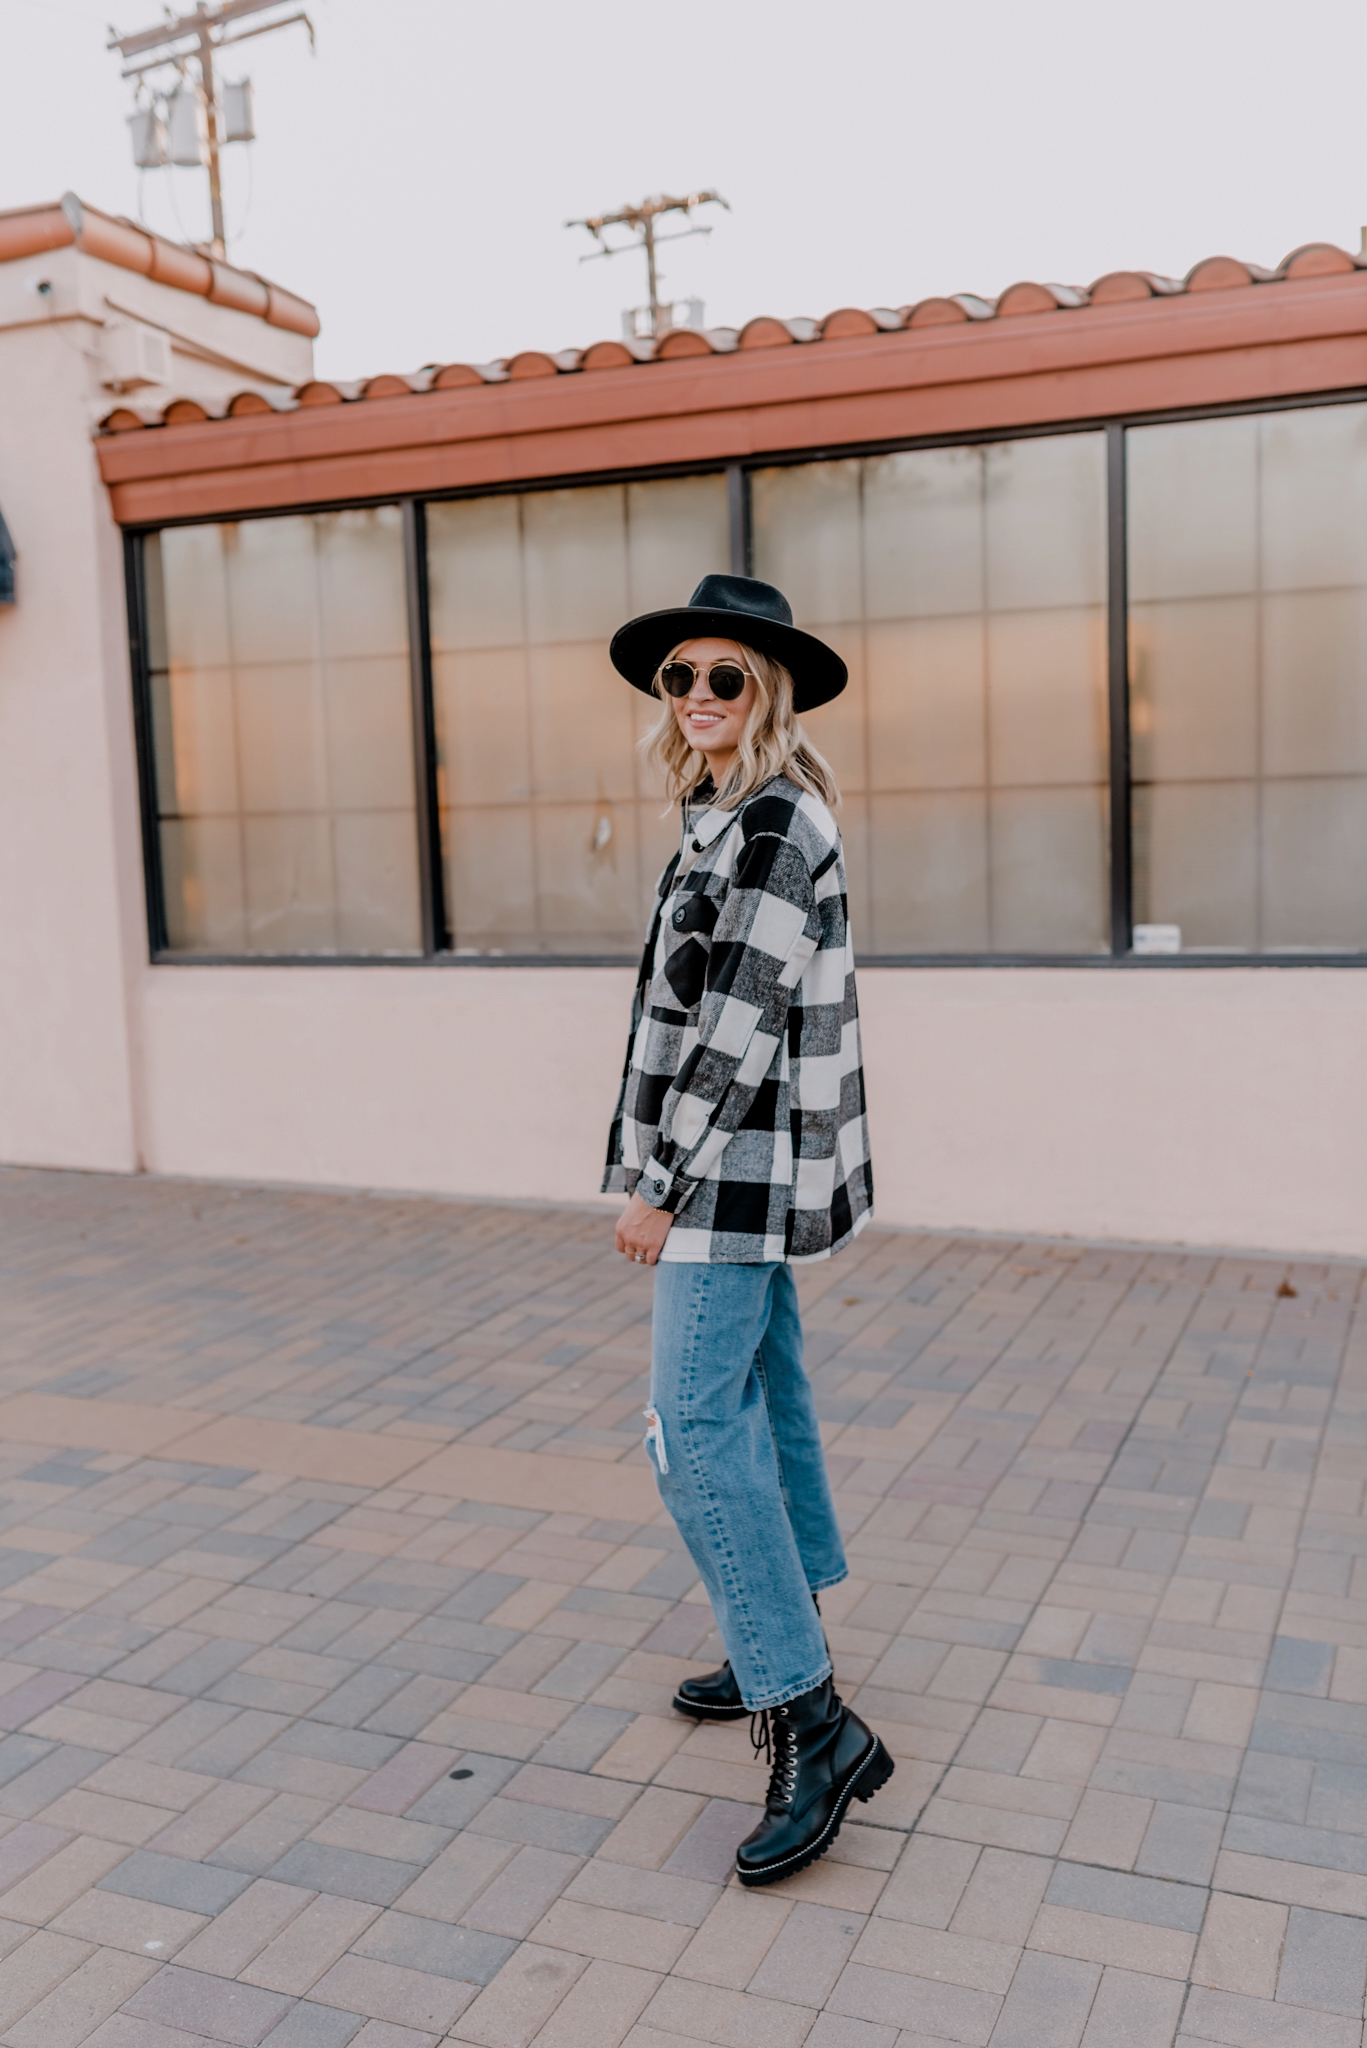 Top Looks of 2020 |Top Looks by San Diego fashion blog, Navy Grace: image of a woman wearing a black and white buffalo plaid jacket, black wide brim felt hat, distressed denim, and black combat boots.